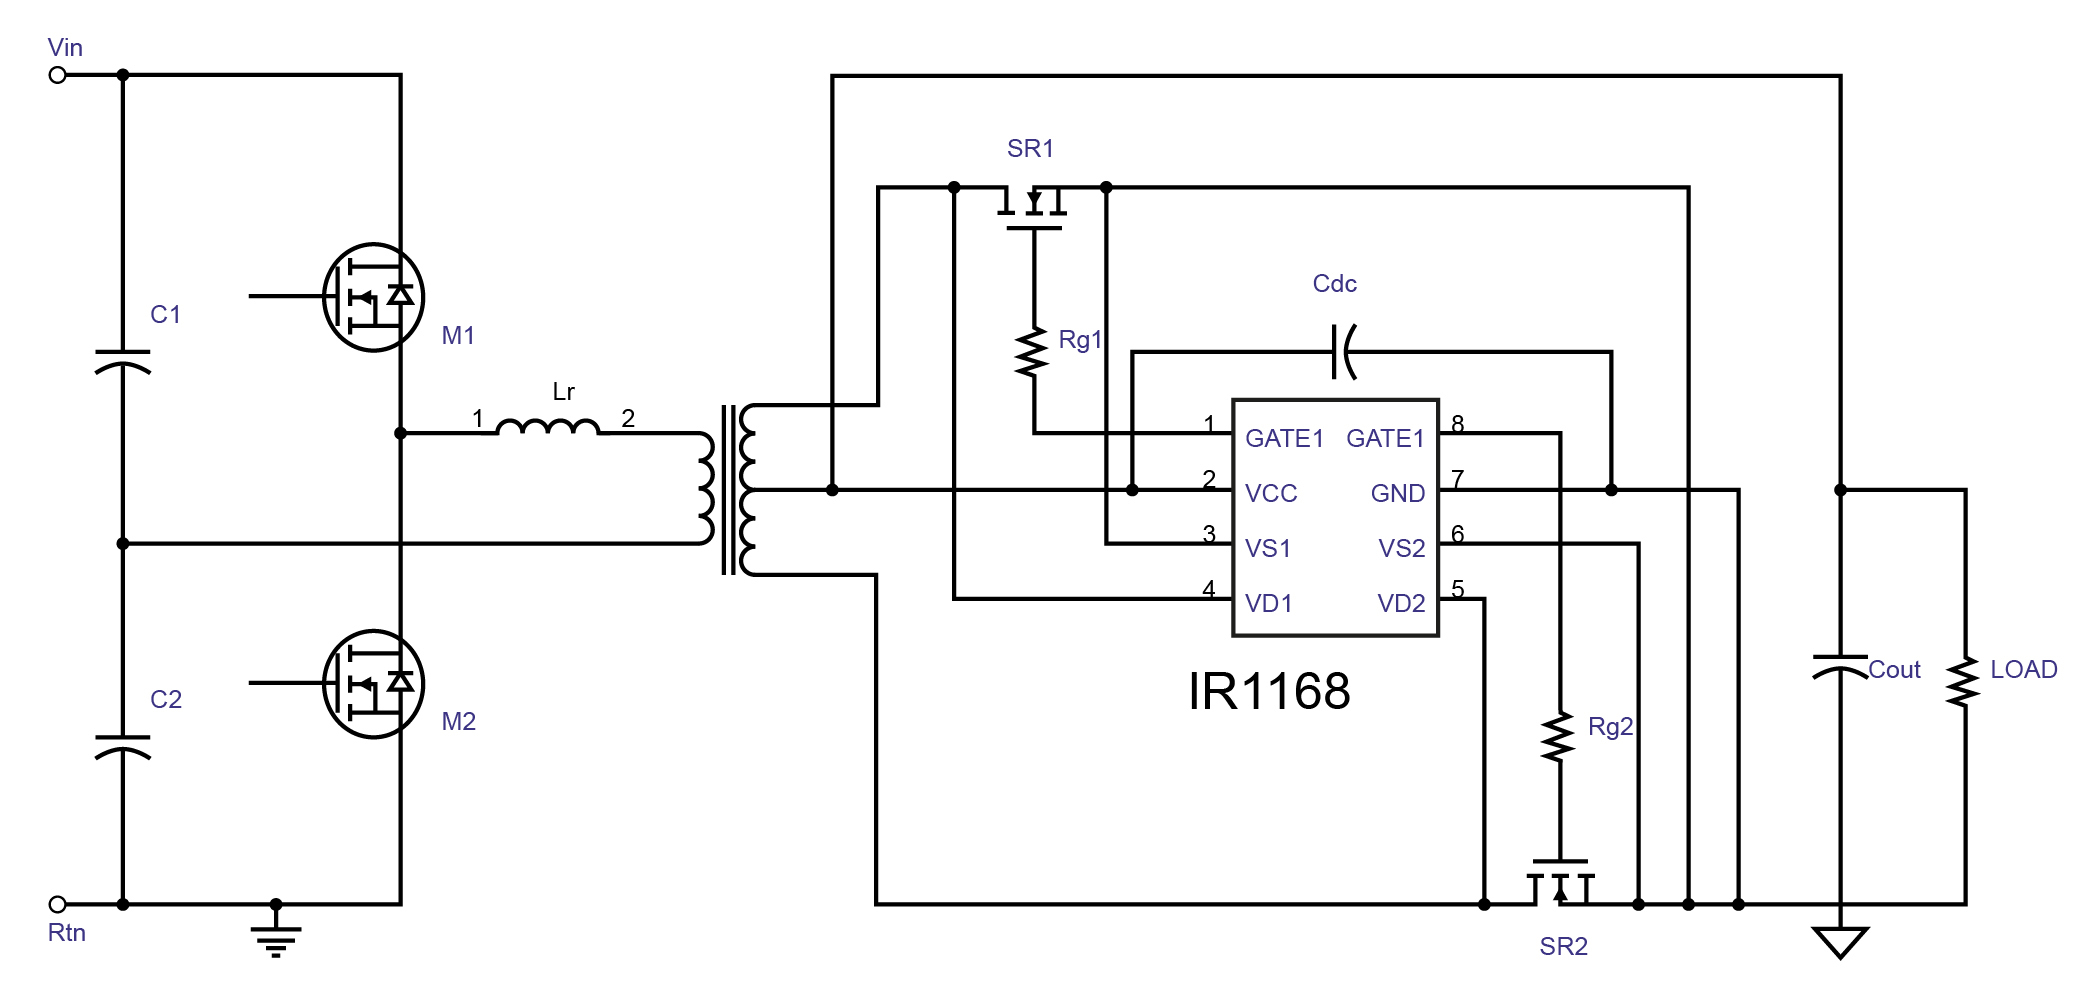 Led Street Lighting H Bridge Circuit Design The Shown In Figure 3 Illustrates Resonant Half With Step Down Transformer And A Synchronous Rectification Stage At Secondary To